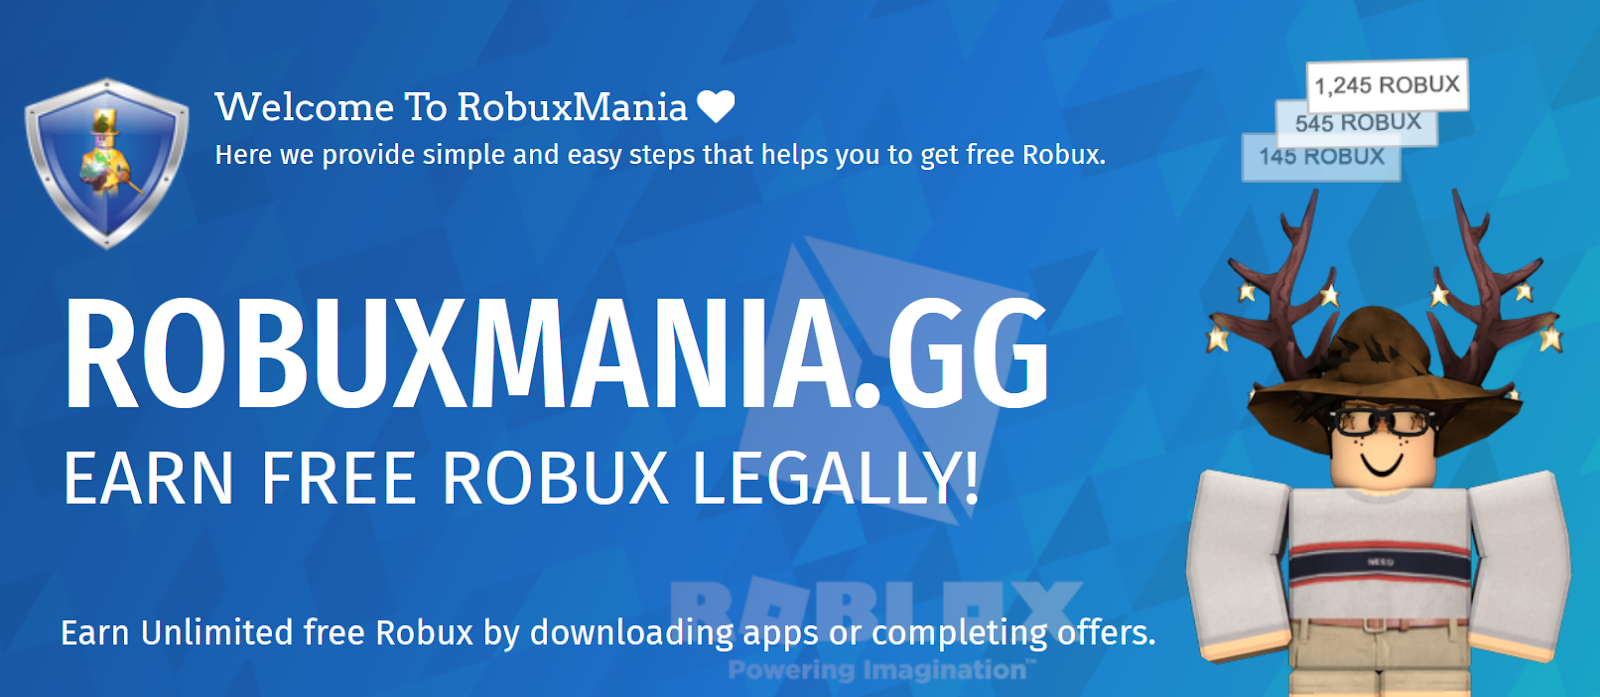 Free Robux Generator Full Guide How To Unlimited Free Robux 100